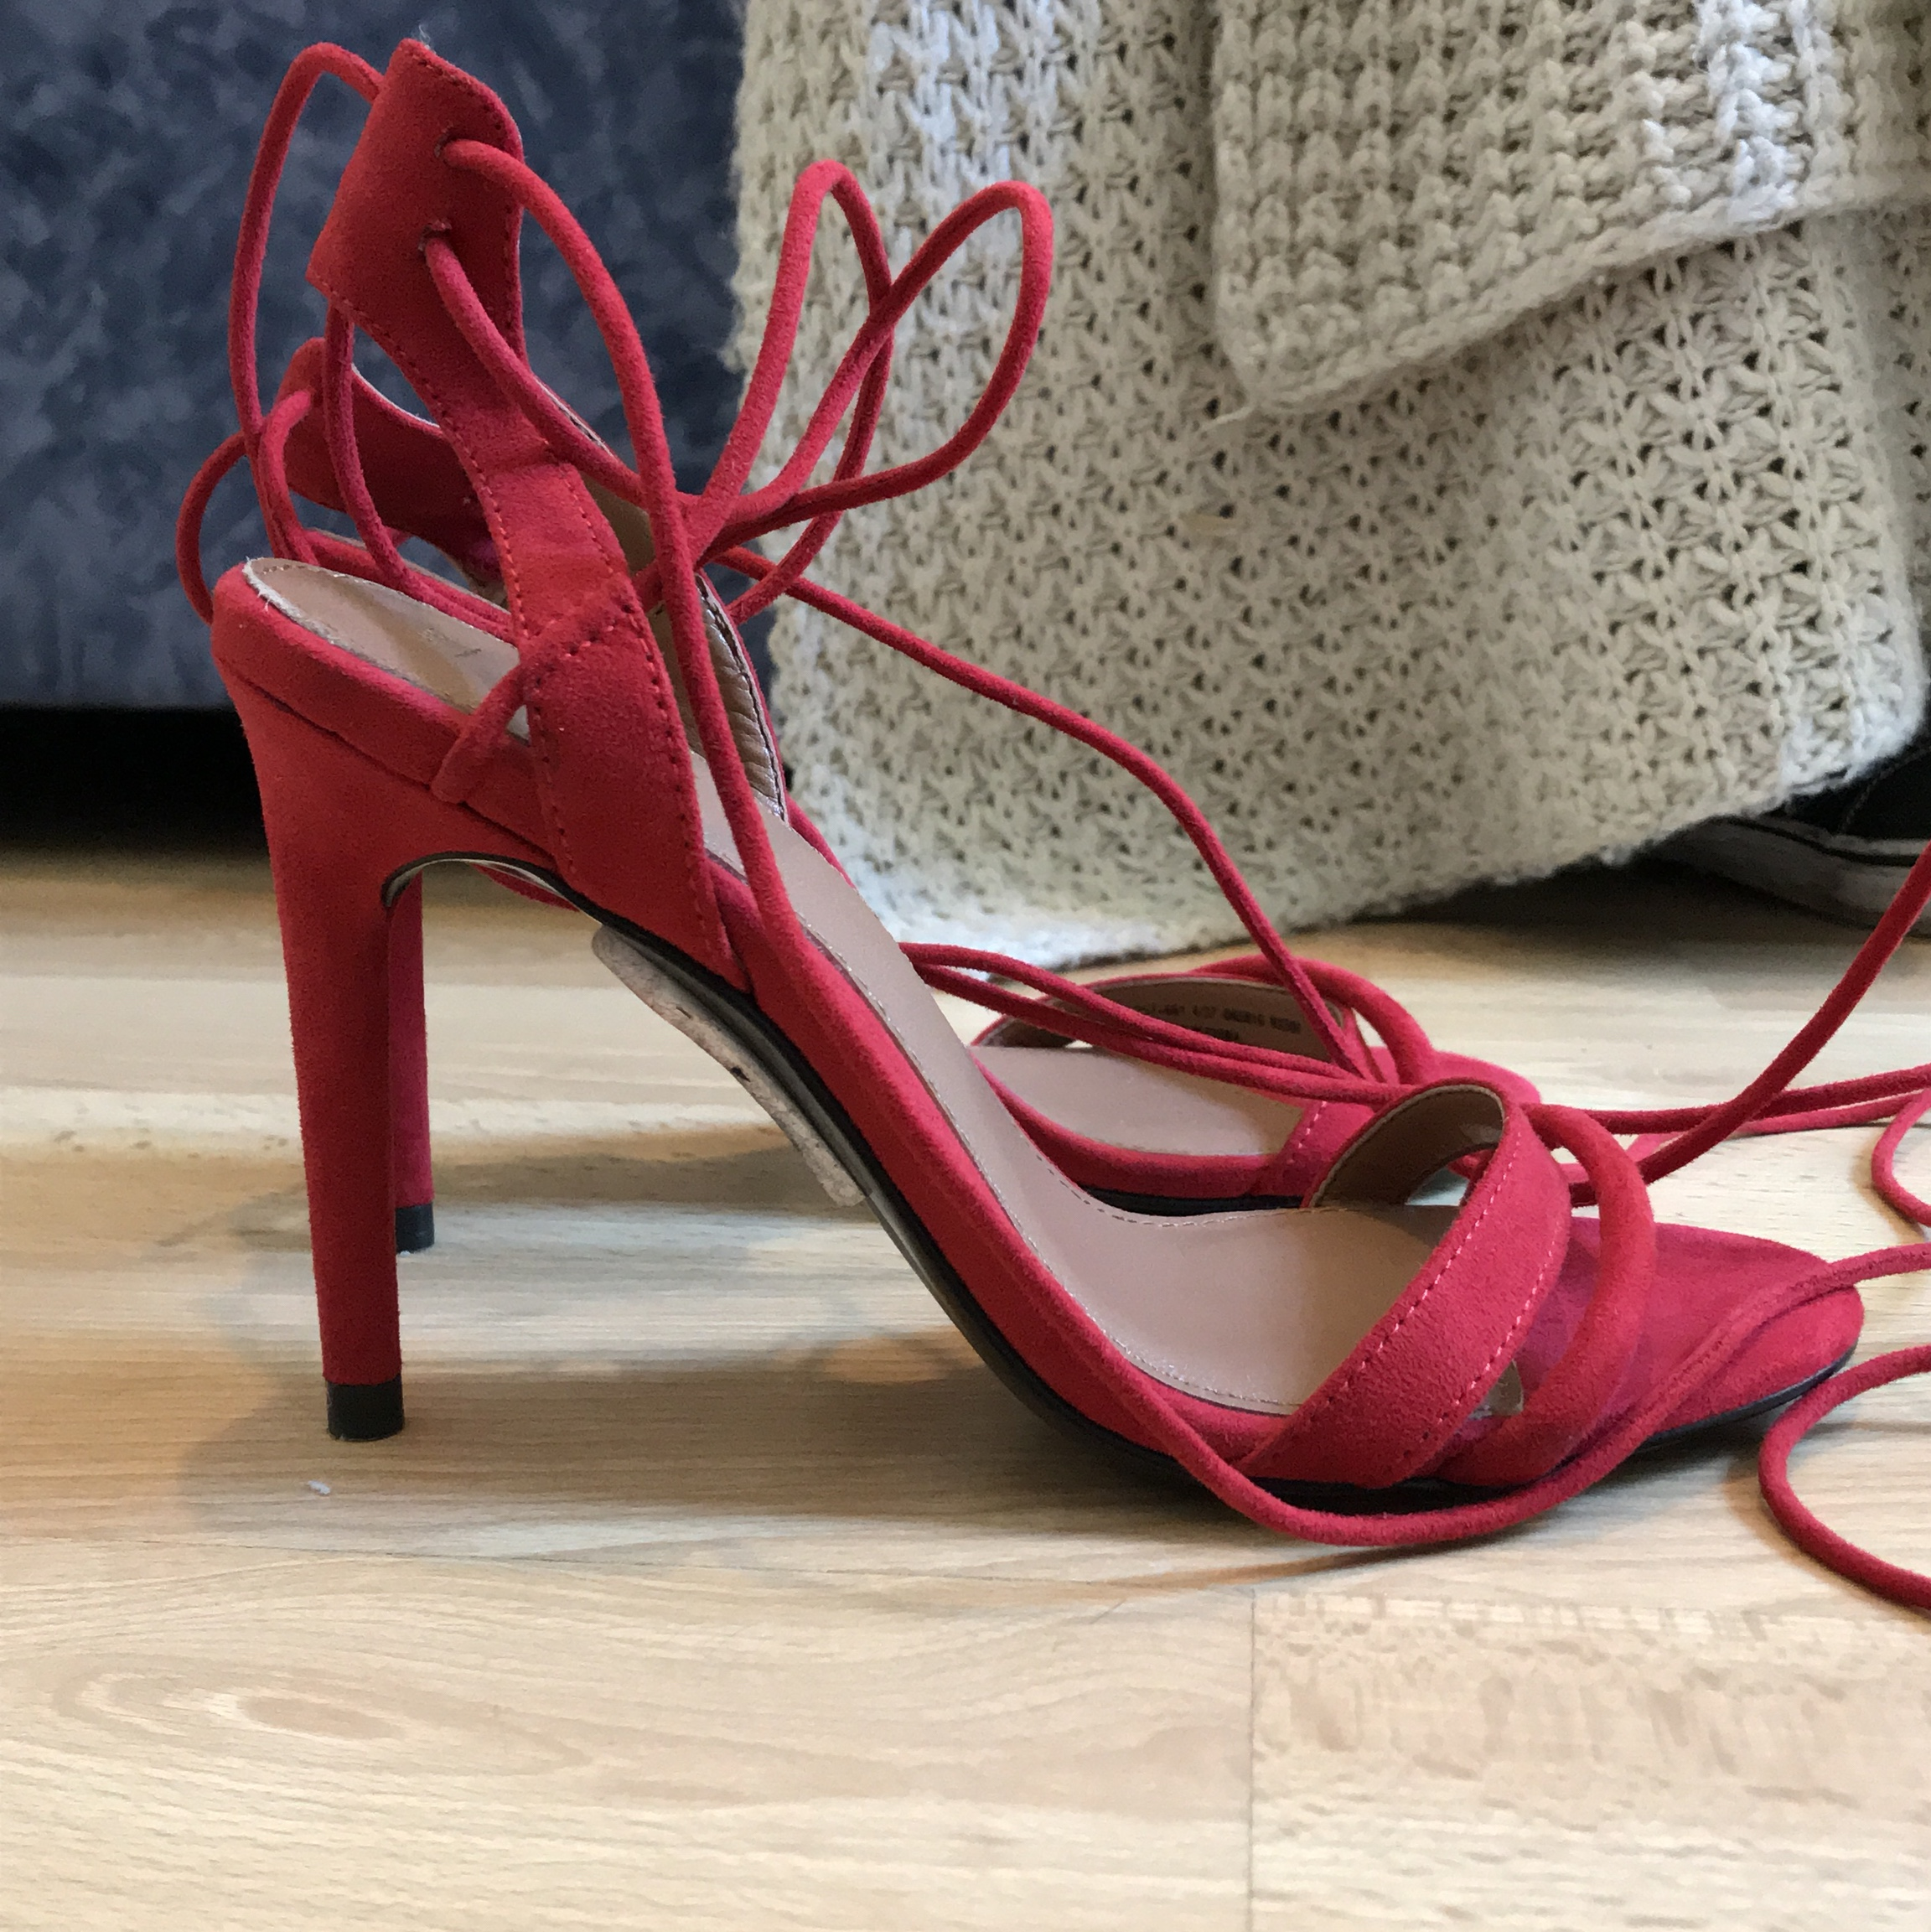 a1c0f803486 Brand new bright red suede gladiator/ strappy sandal... - Depop